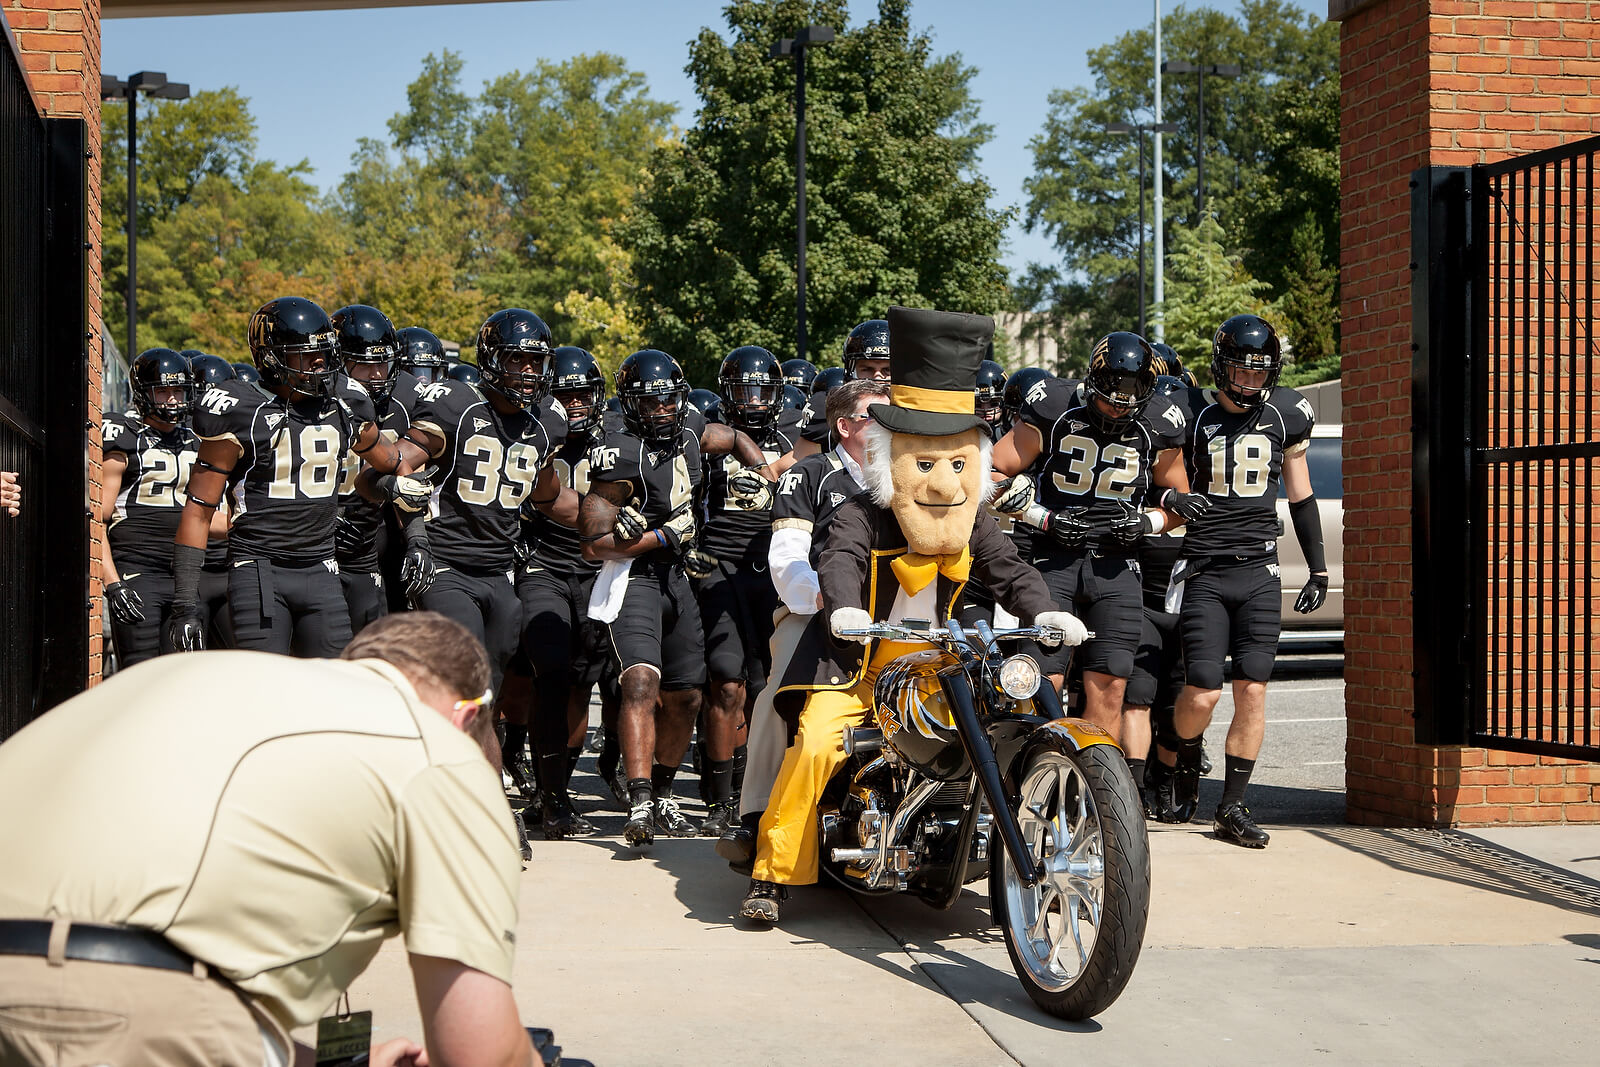 Wake Forest Demon Deacons Open The Gate rivalry